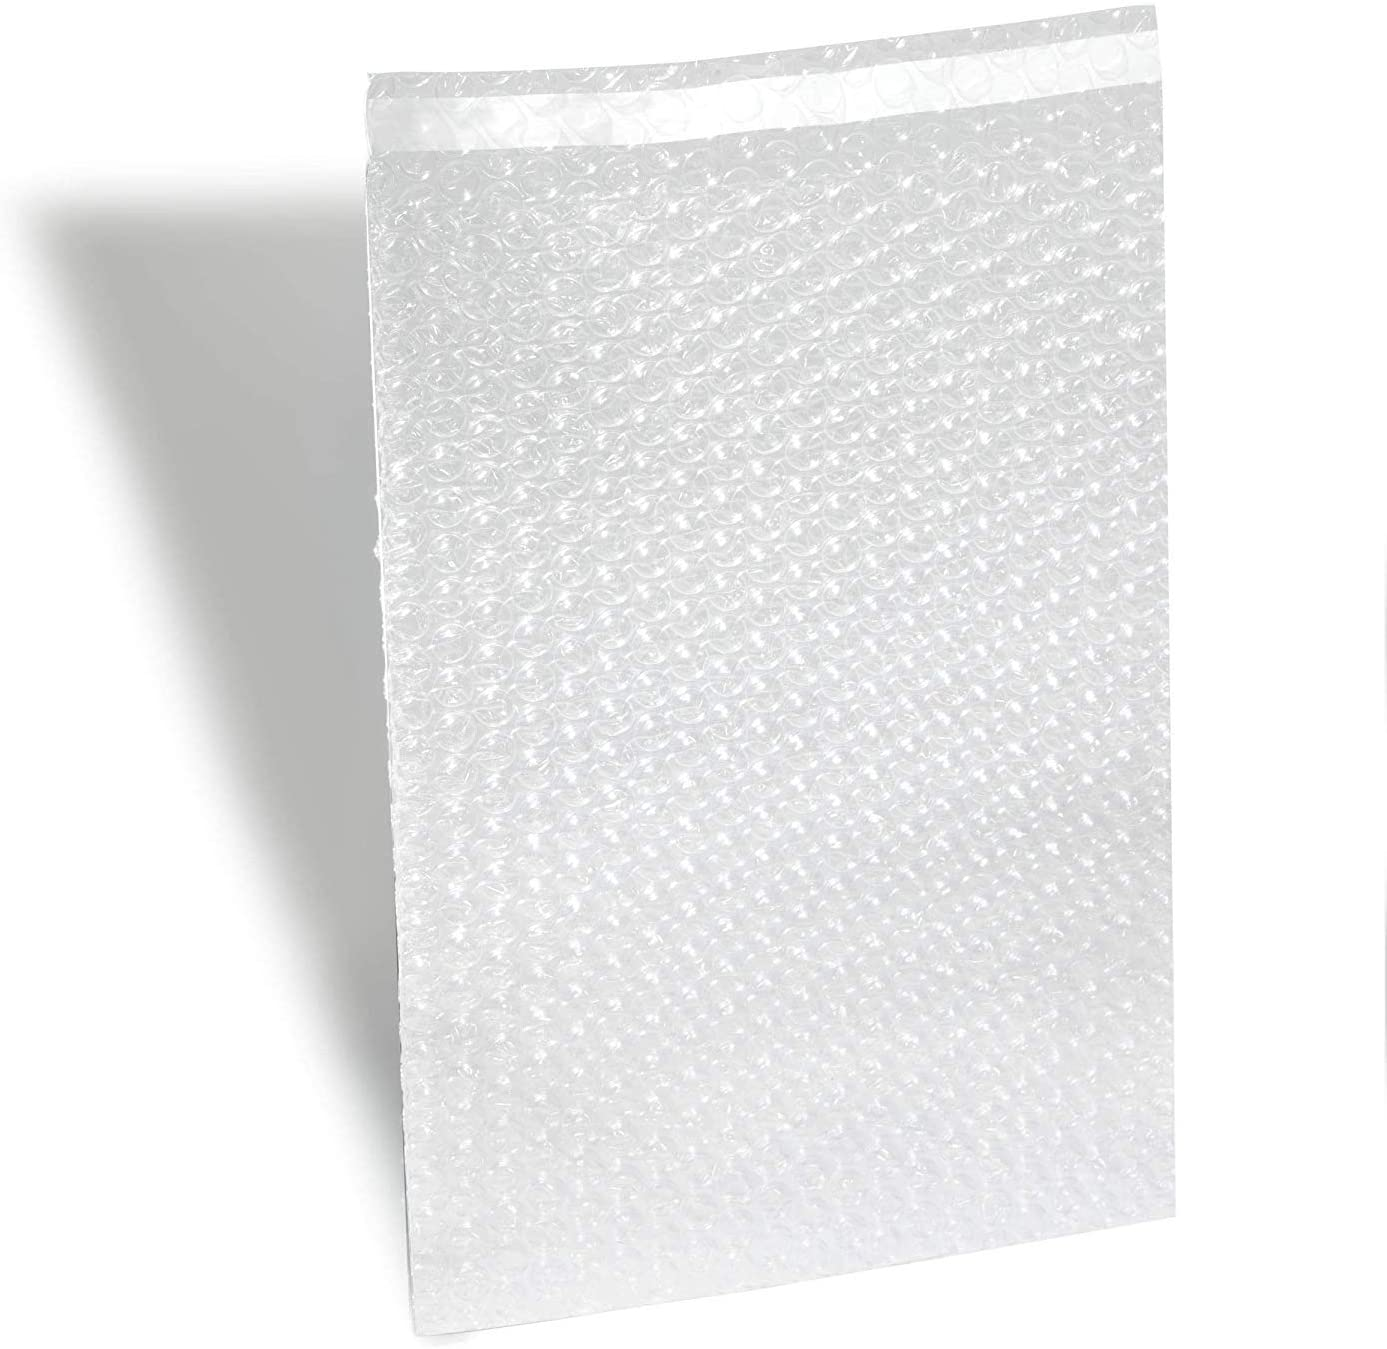 50 packs 4x5.5 SELF-SEAL CLEAR BUBBLE POUCHES BAGS